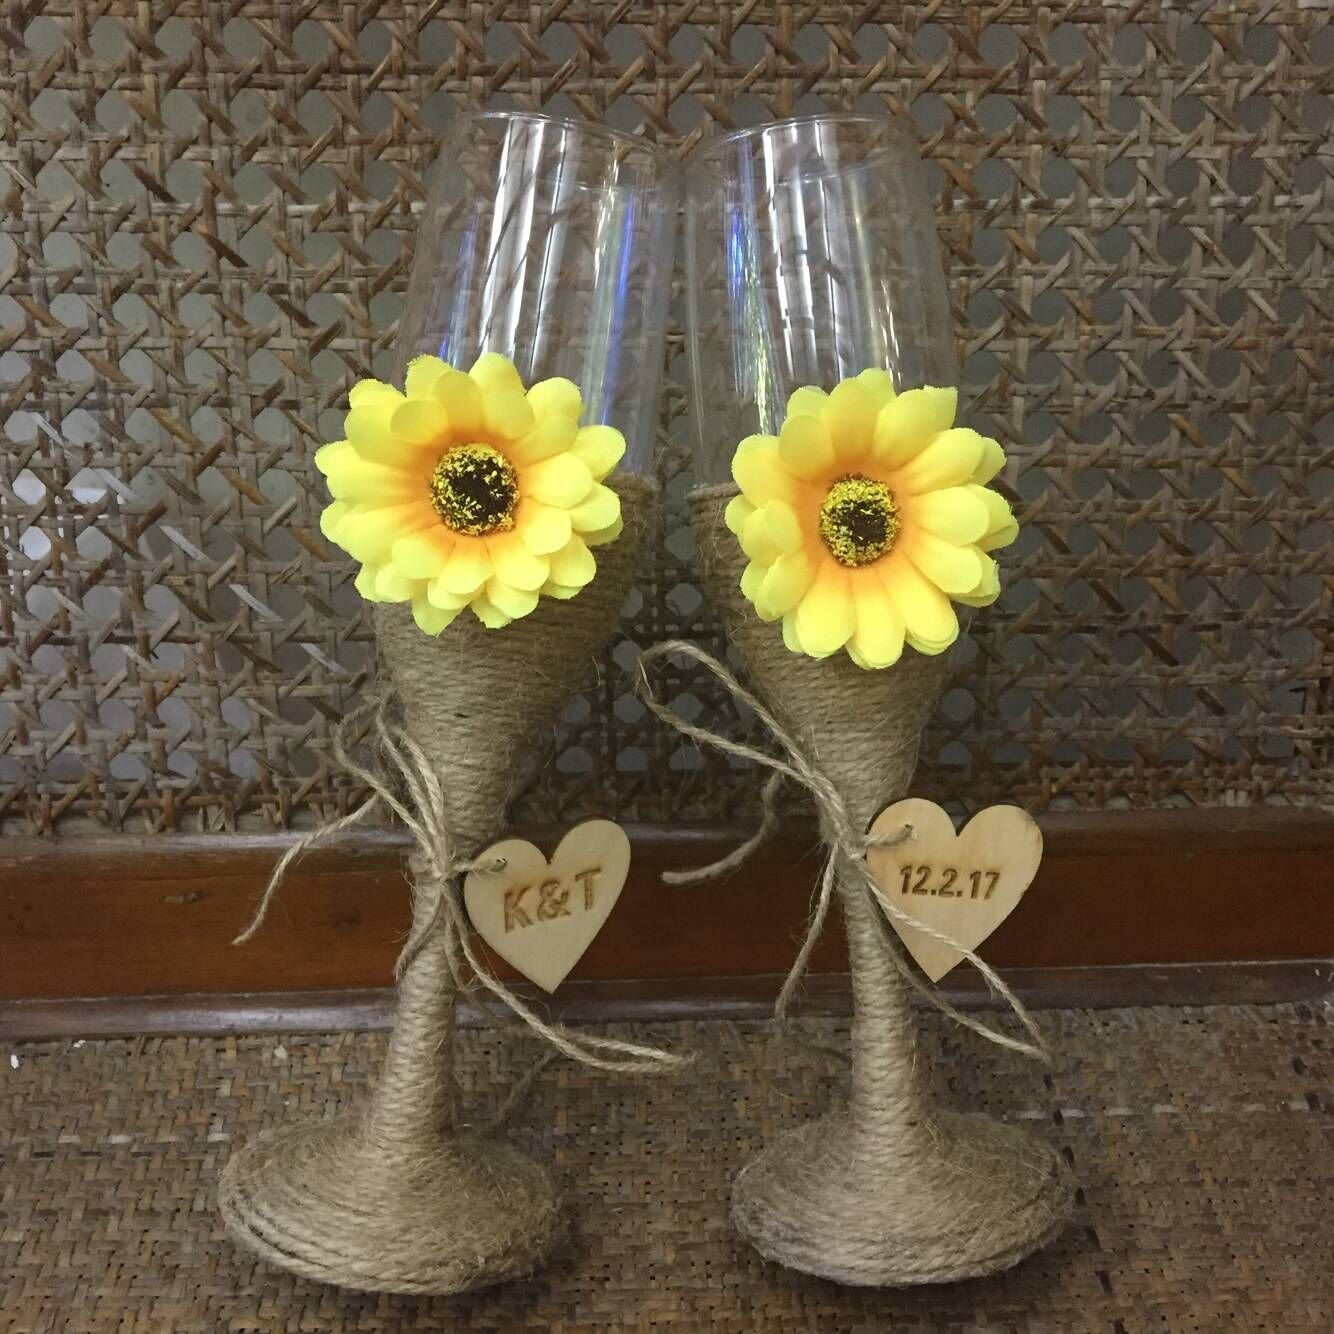 Wedding Champagne Flutes with Sunflowers, Personalized Wedding Toasting Flutes Pair of Two Glasses for Bride & Groom Wedding Glasses